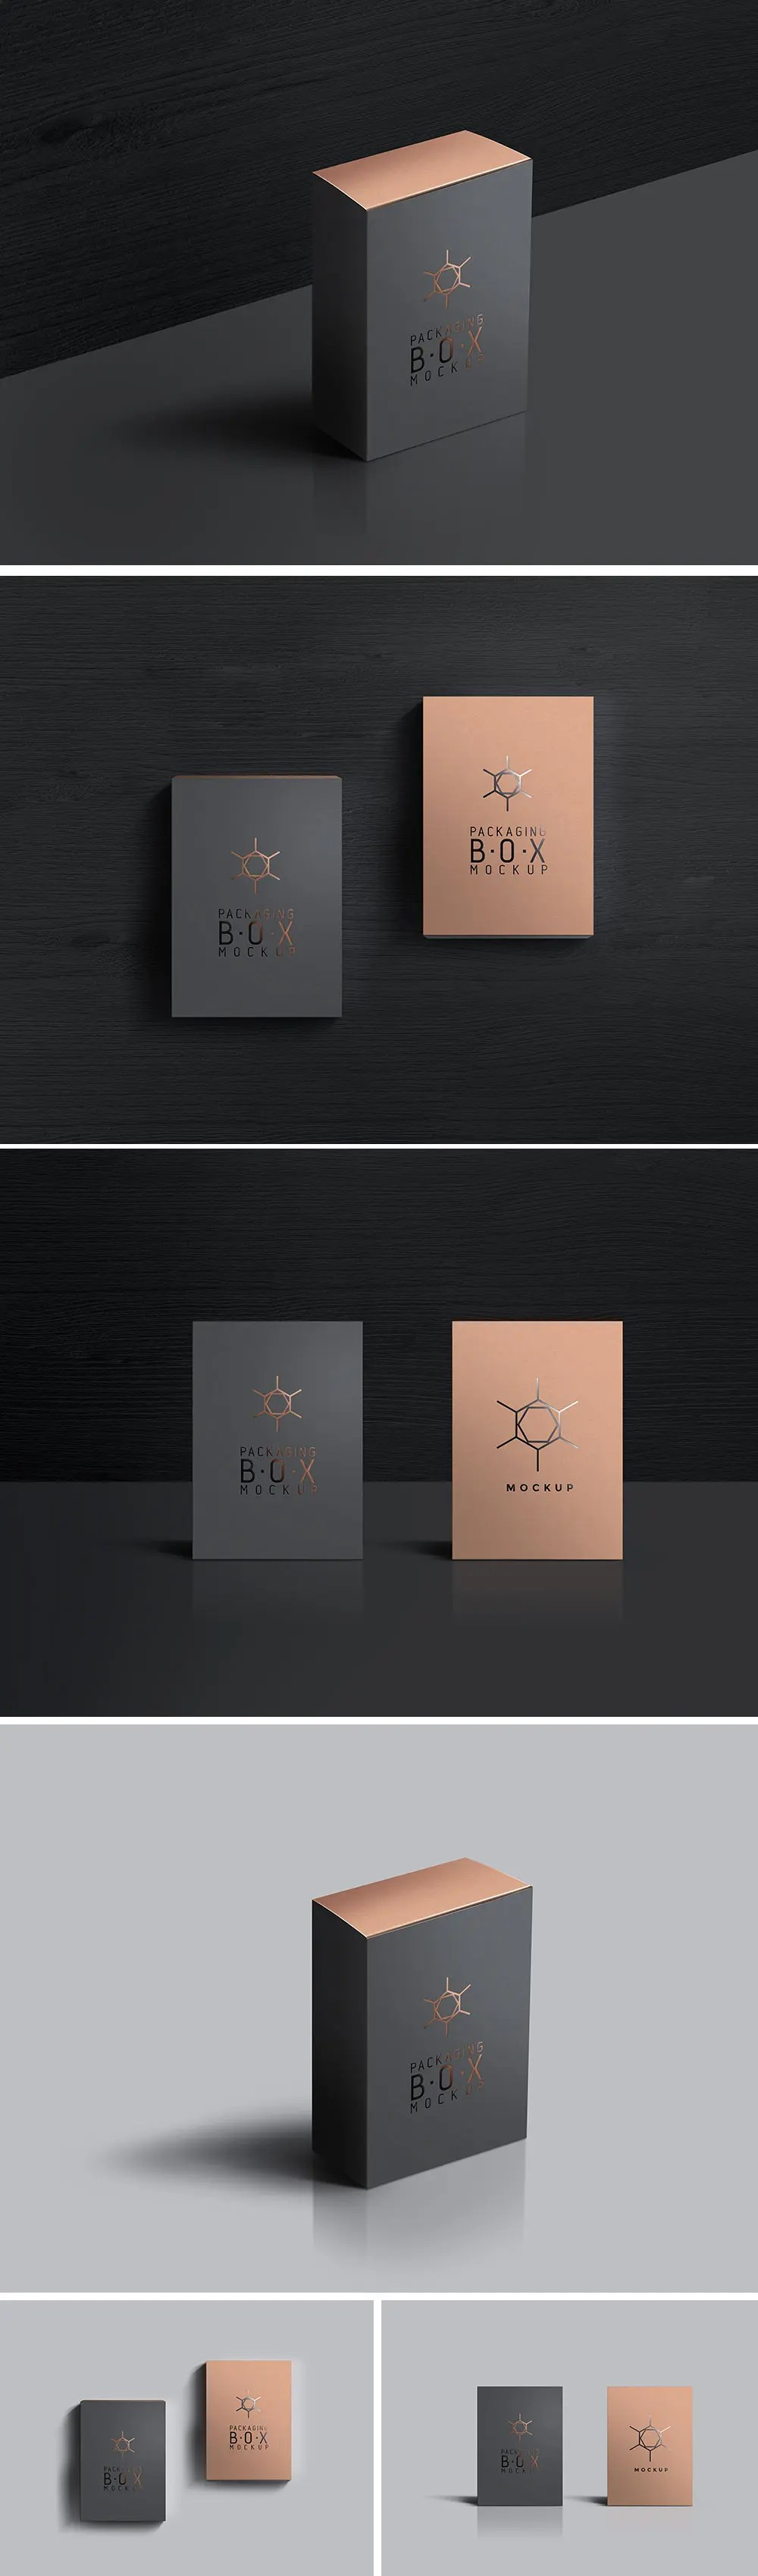 Download Packaging Box Mockup PSD Templates - LTHEME